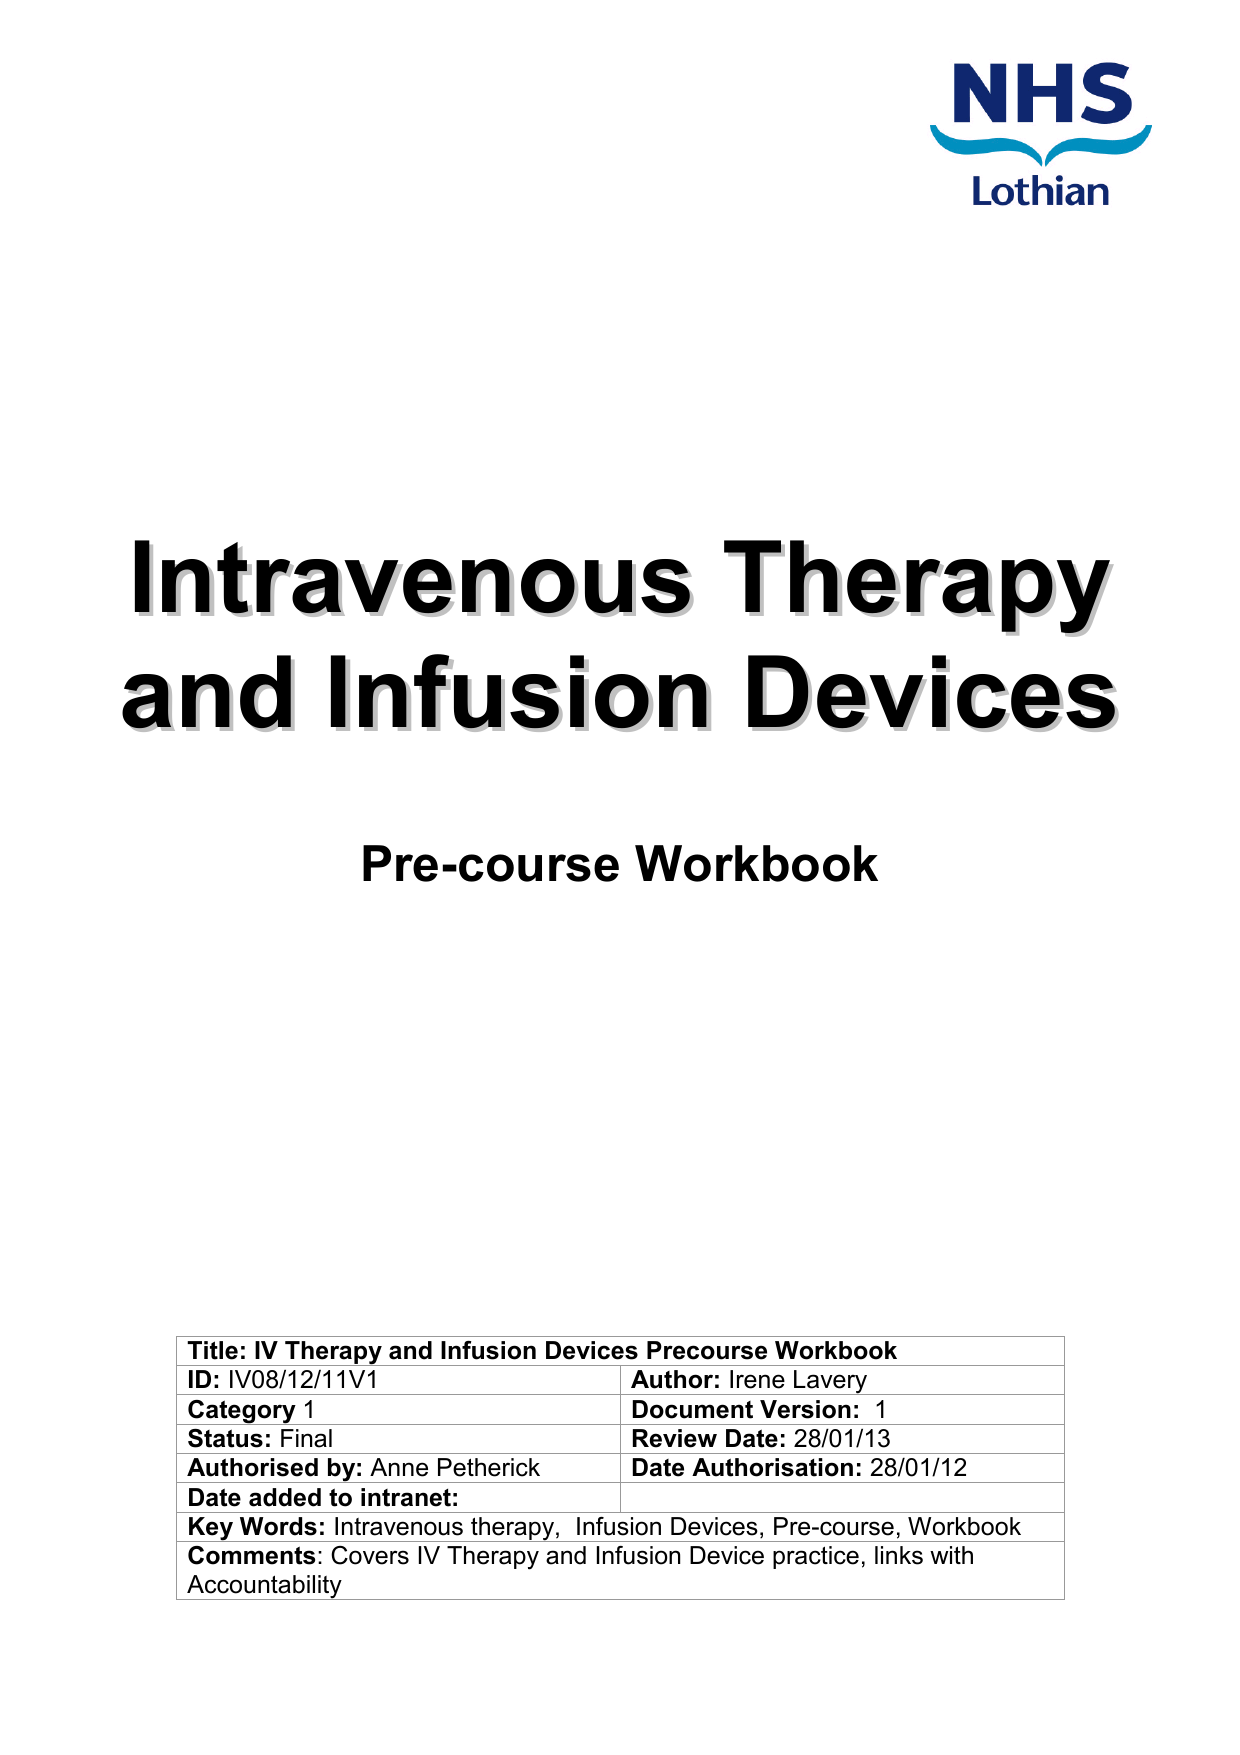 intravenous therapy and infusion devices